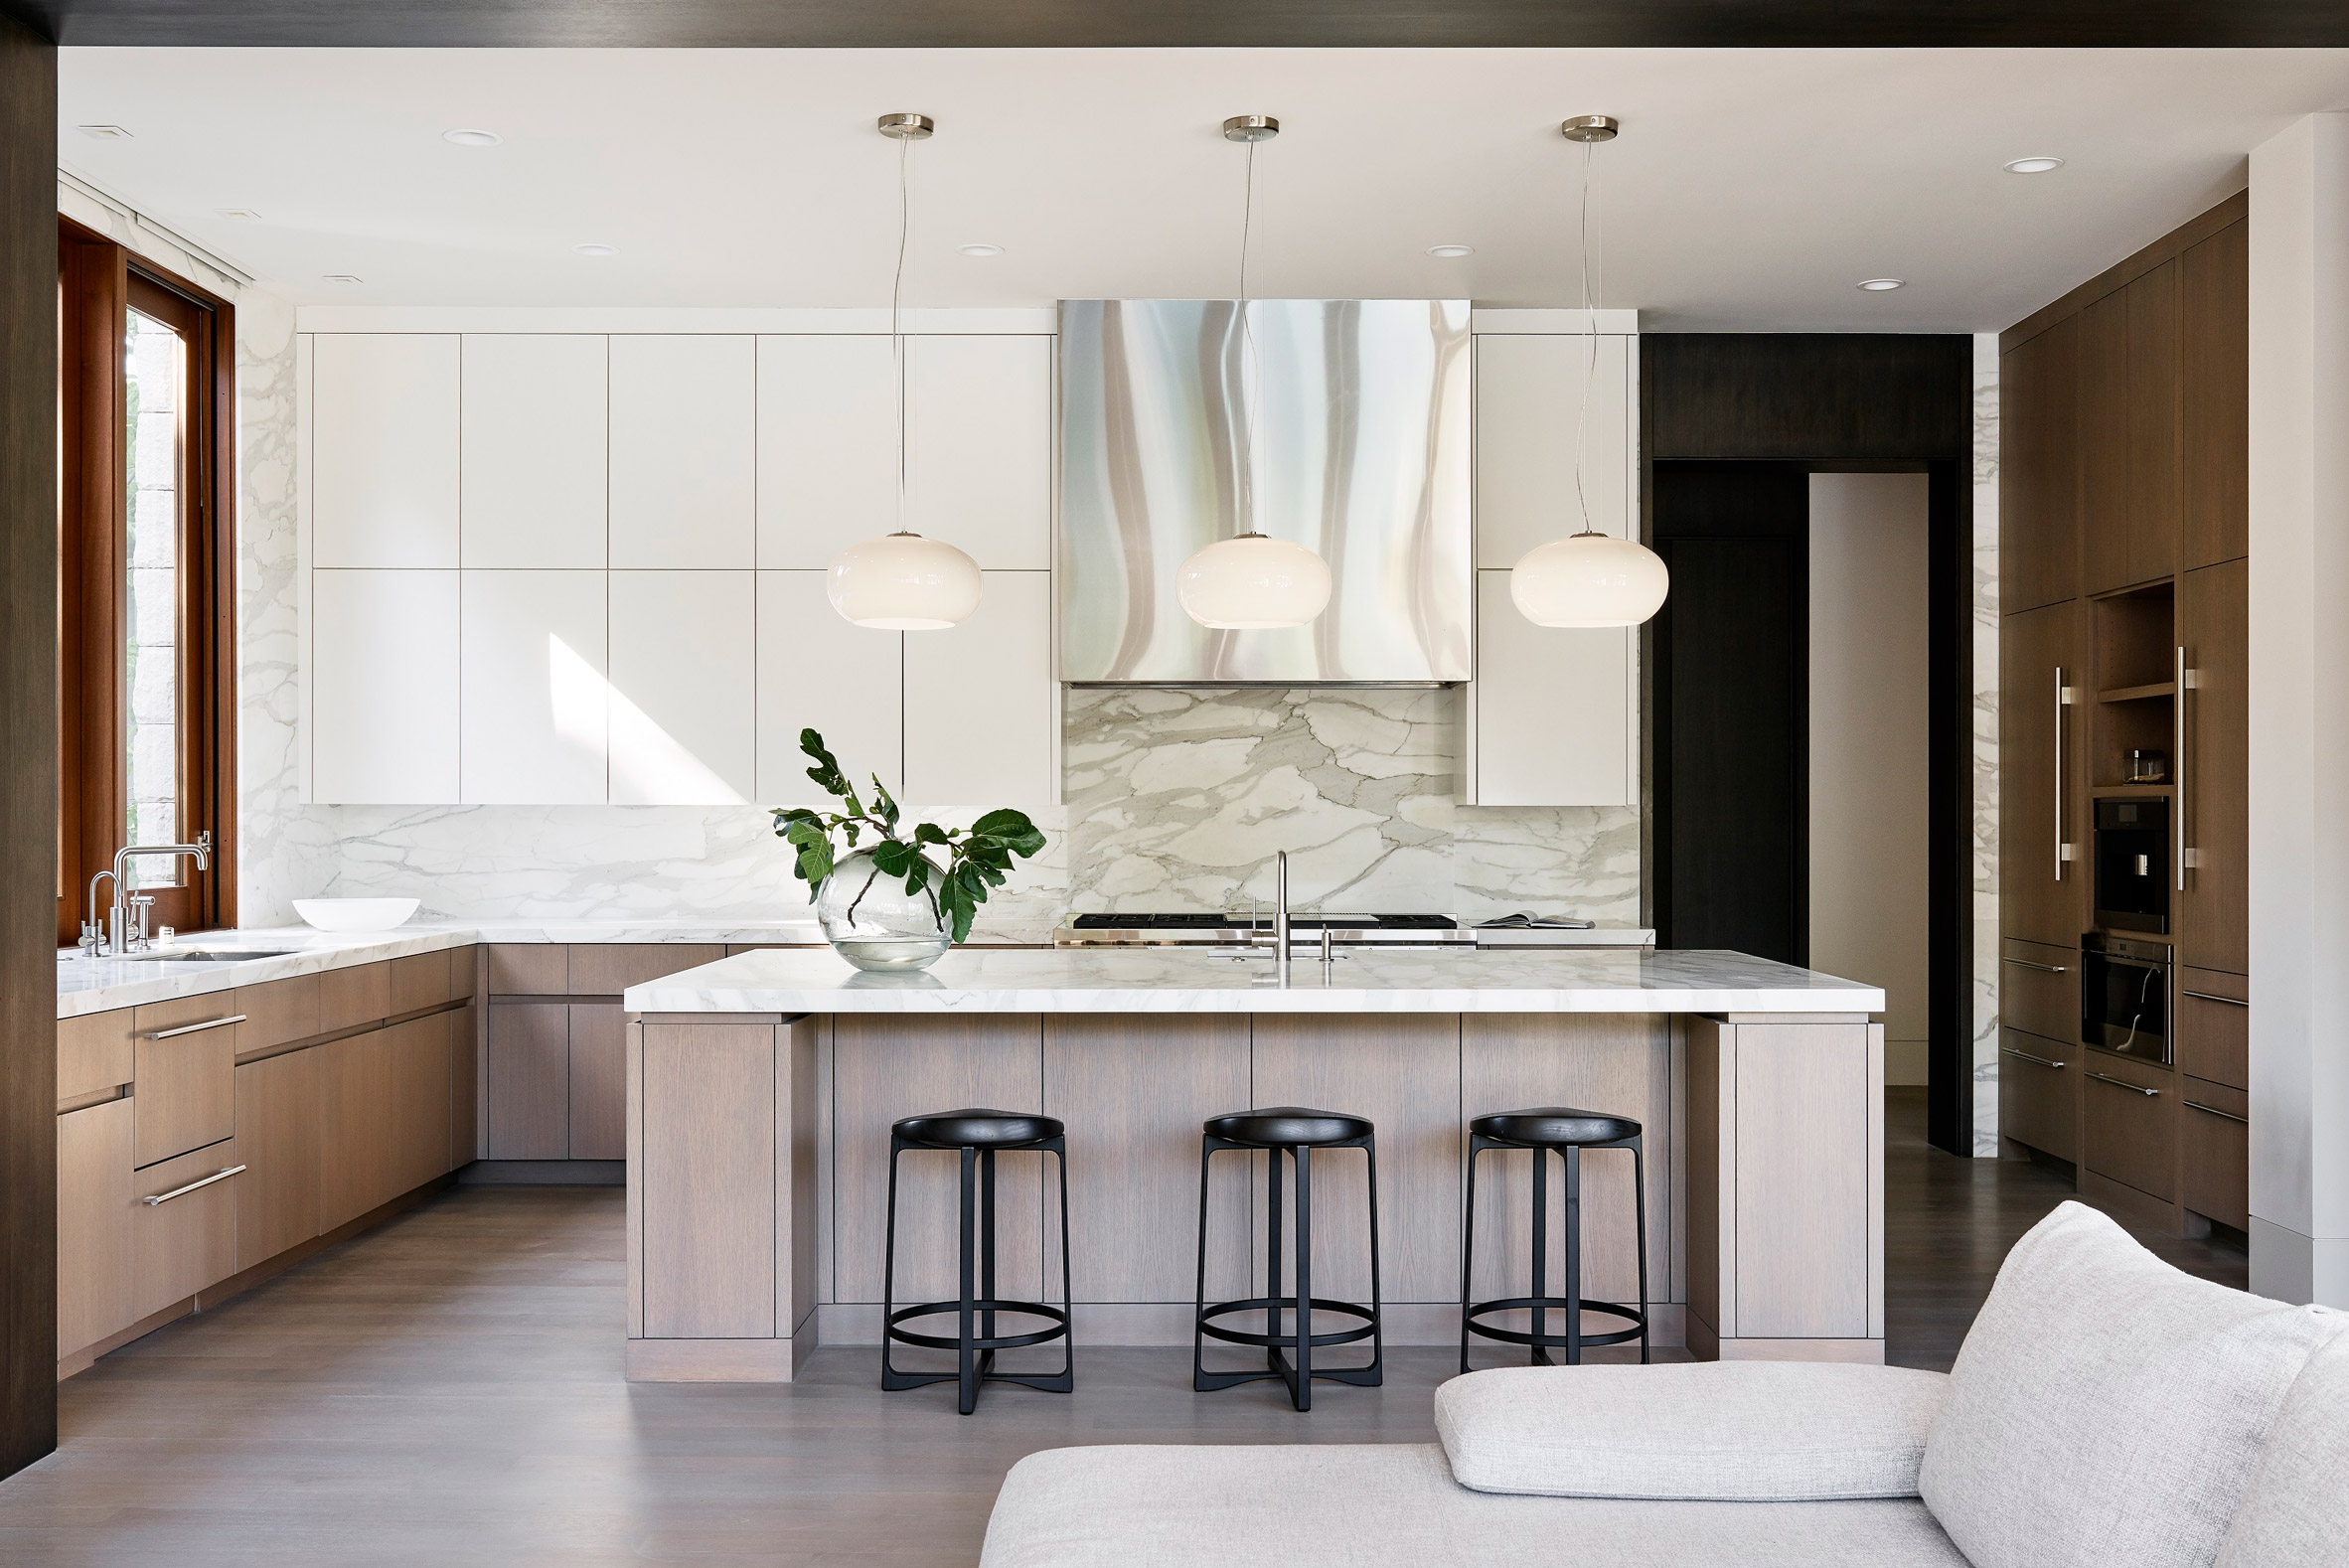 Atherton by Pacific Peninsula and Leverone DesignAtherton by Leverone Design